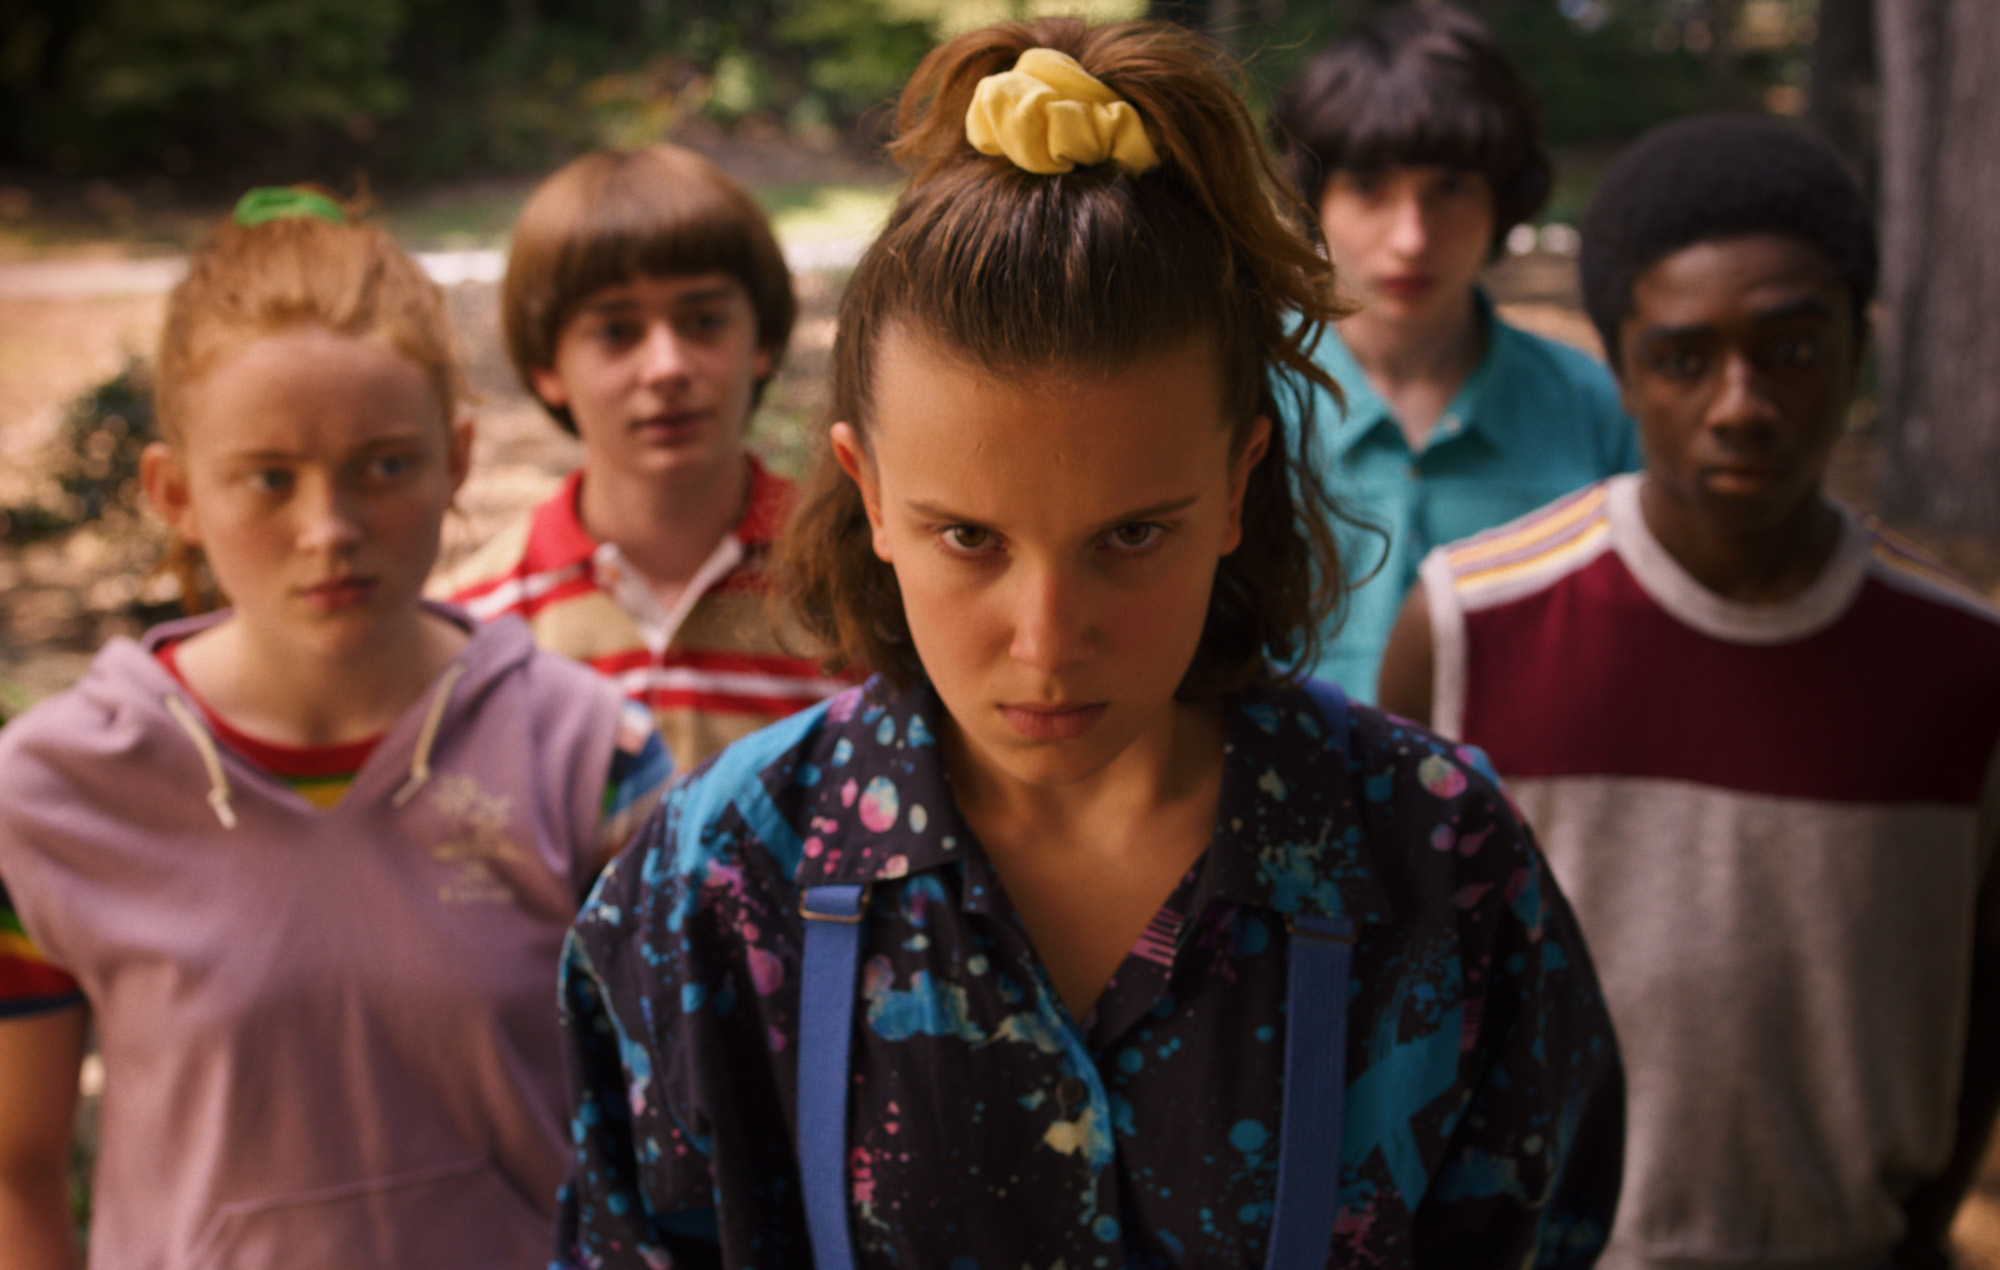 'Stranger Things' season 4: trailers, cast, release date, fan theories and everything we know so far